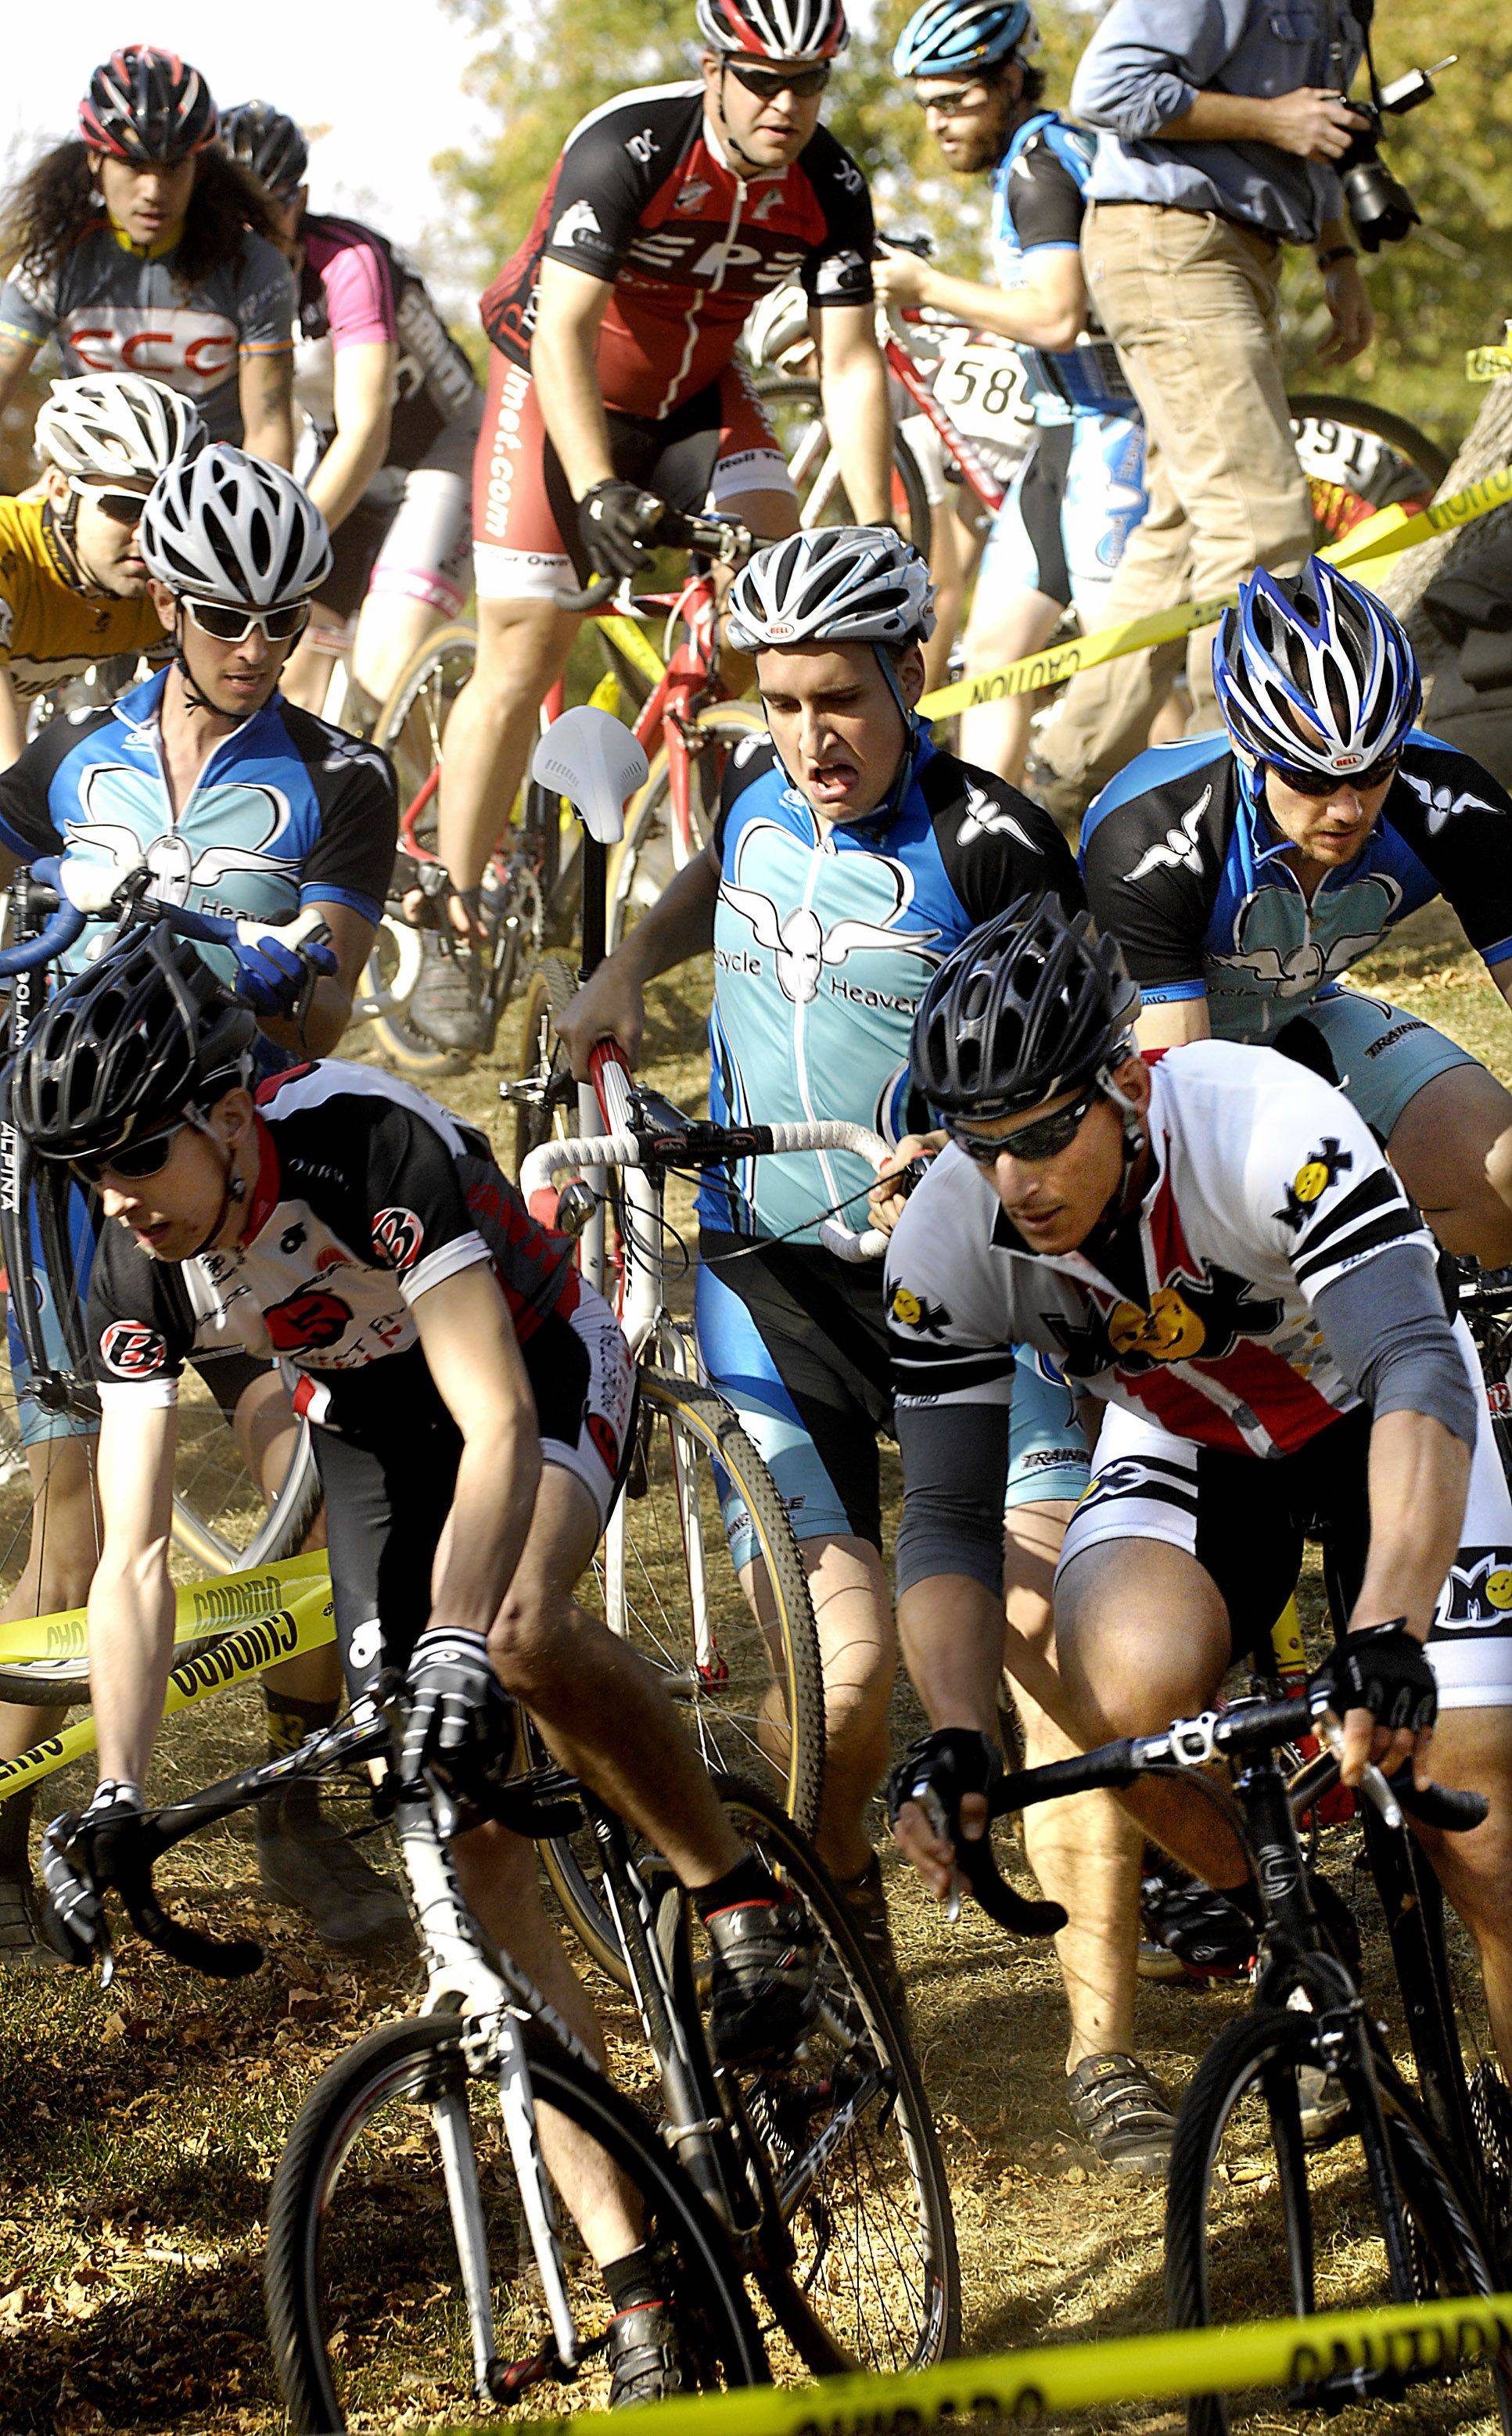 Competitors in a cyclocross race in Carpentersville race through a downhill s-curve called Heckle Hill.